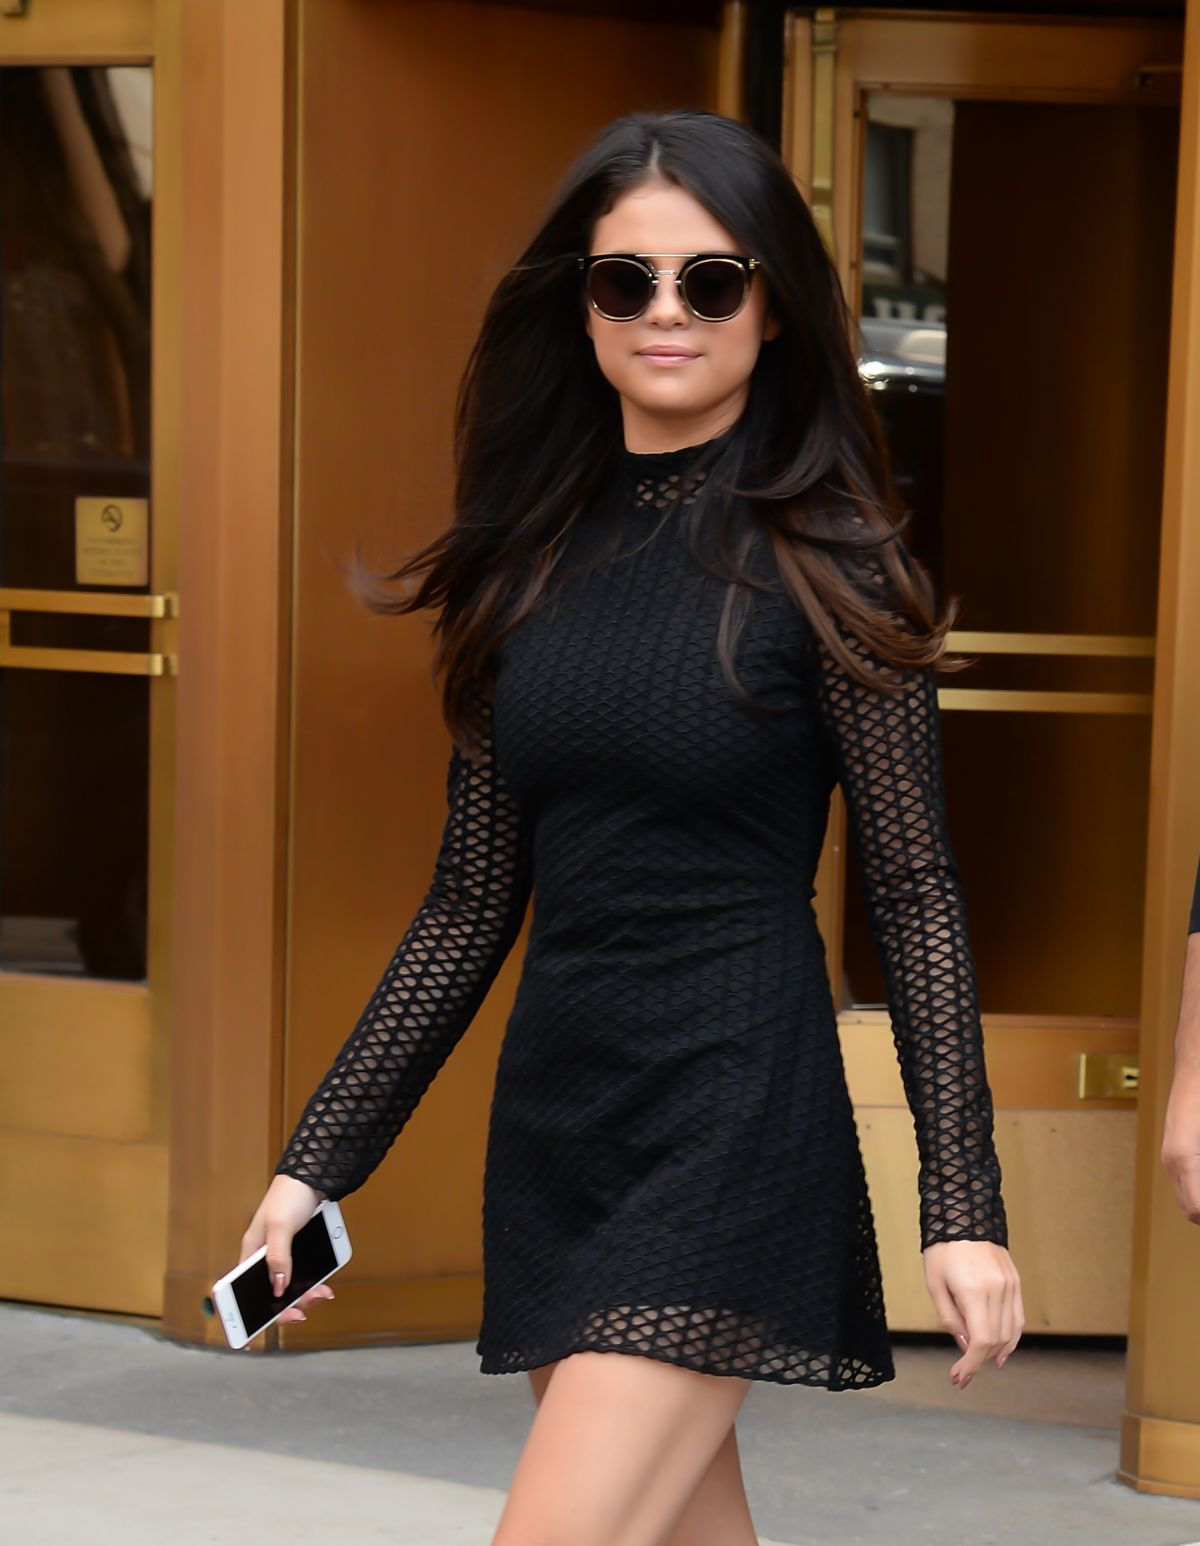 selena gomez leaves z100 studios in new york 10/13/2015 - hawtcelebs